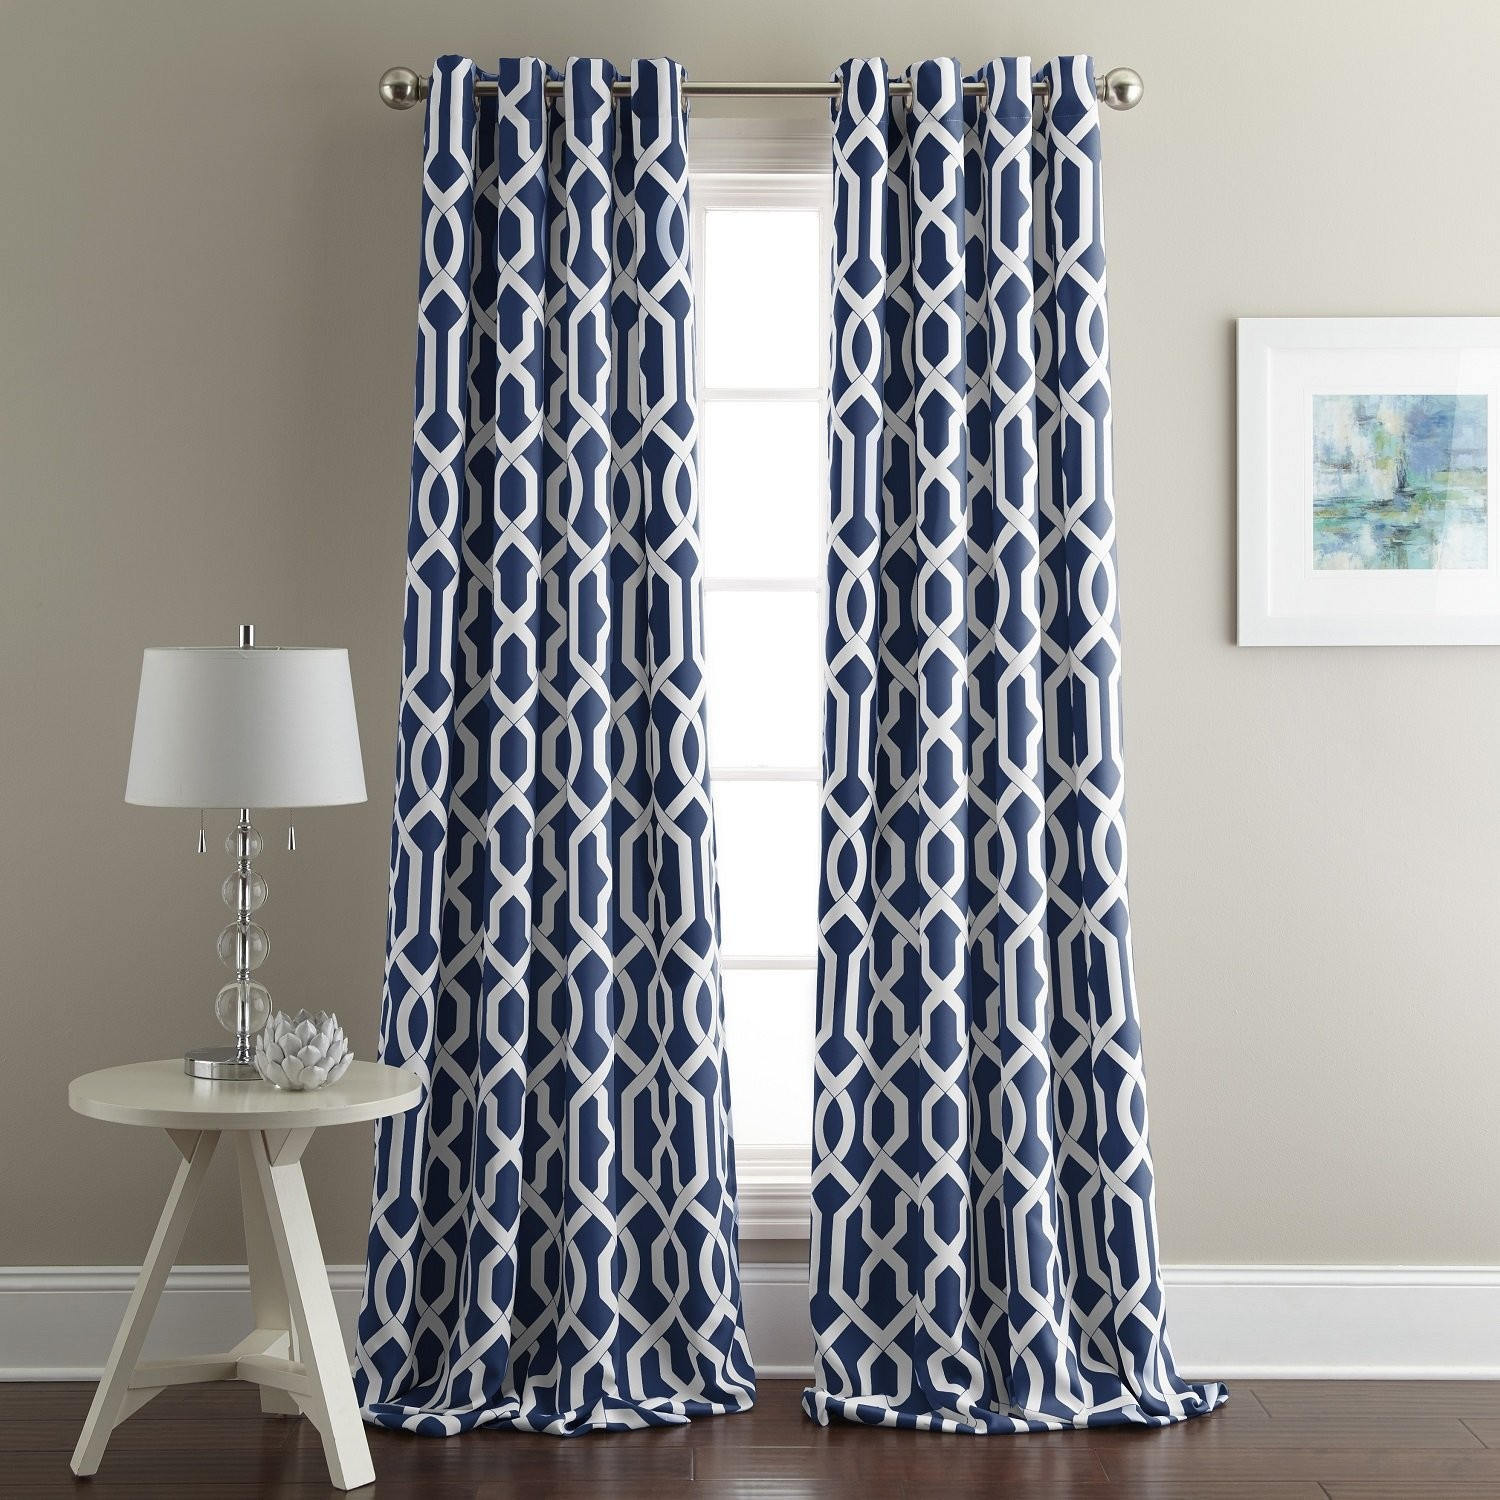 Thermal Insulated Curtains | Insulated Thermal Blackout Curtains | Insulated Drapery